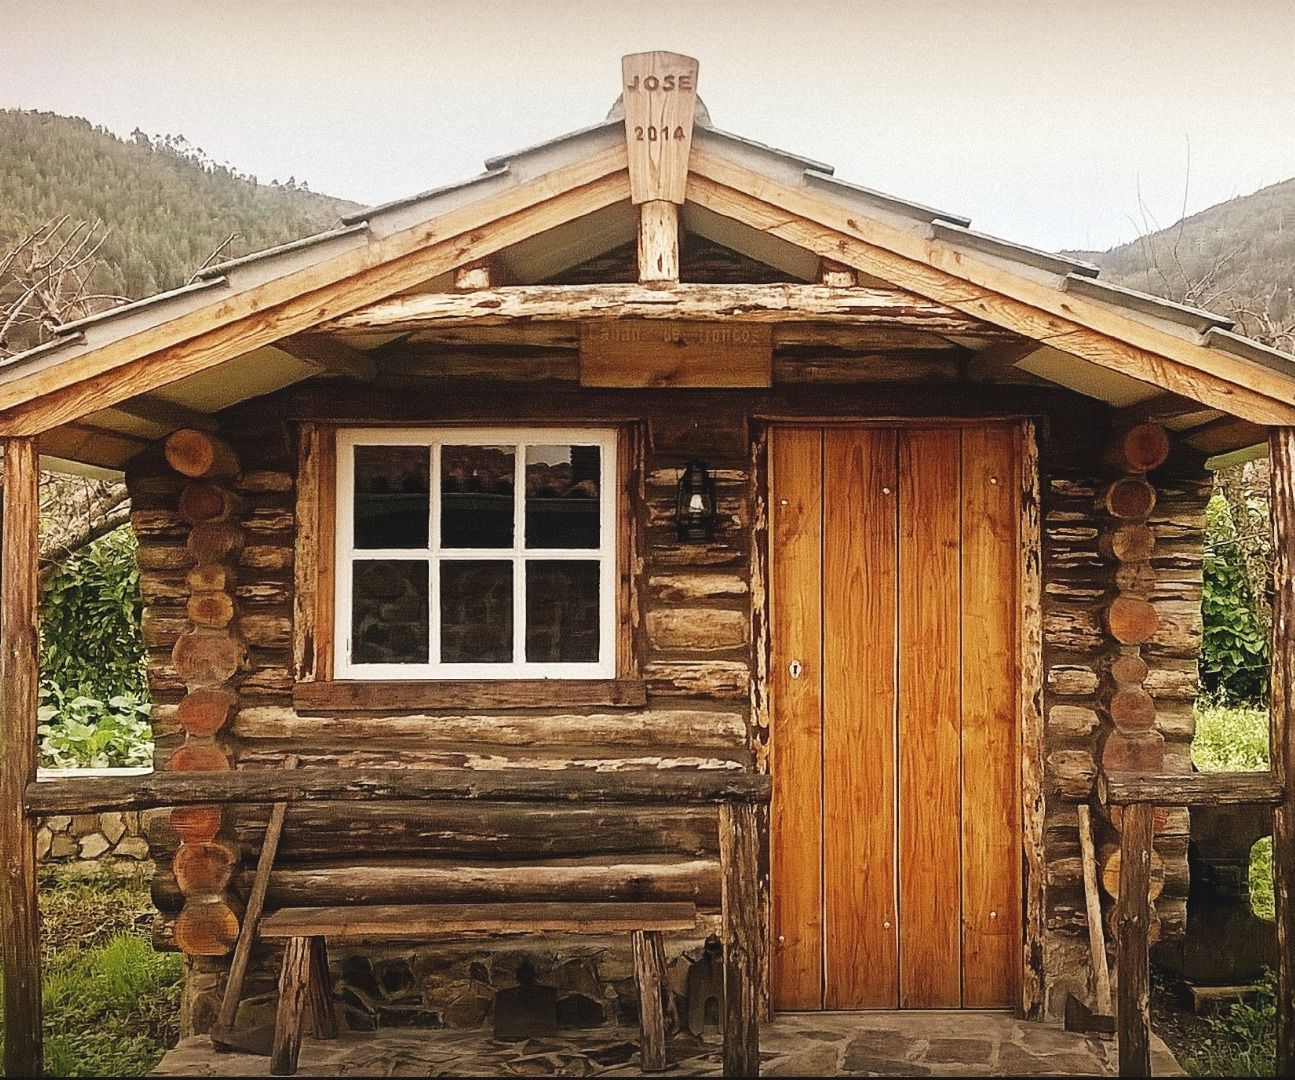 Step By Step Construction Of A Log Cabin Small Log Cabin Log Cabin Plans Building A Small Cabin